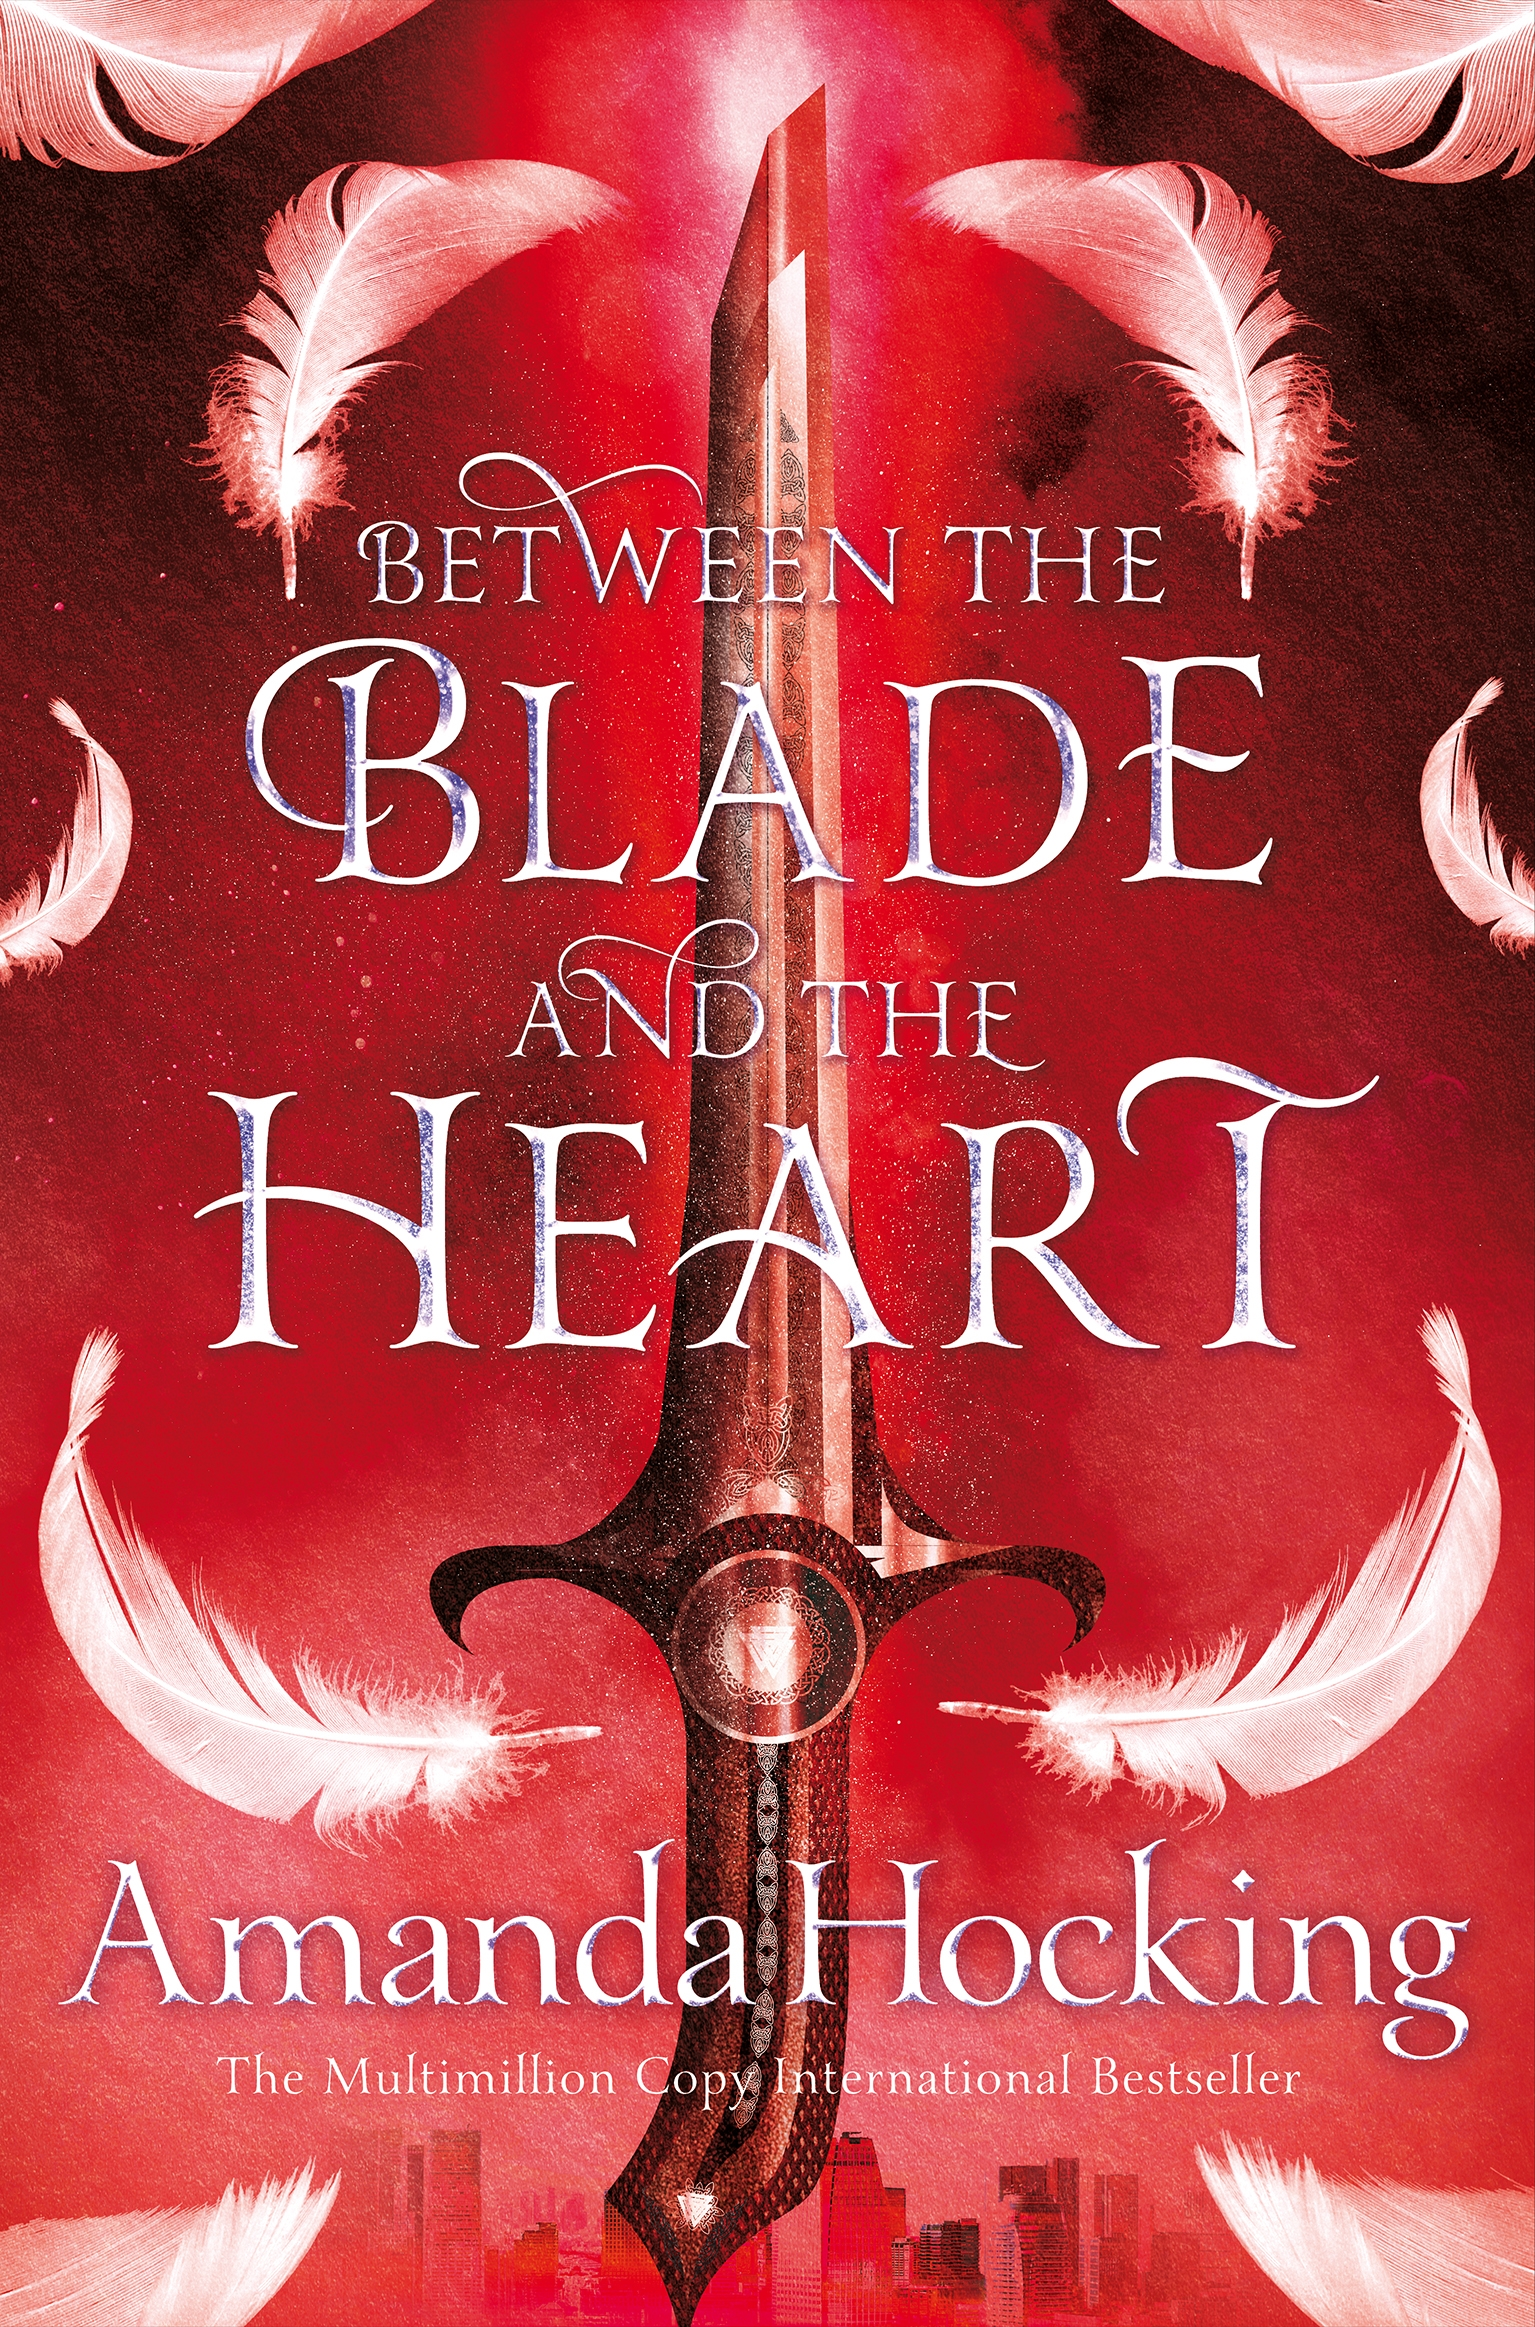 Between the Blade and the Heart - 9781509807680